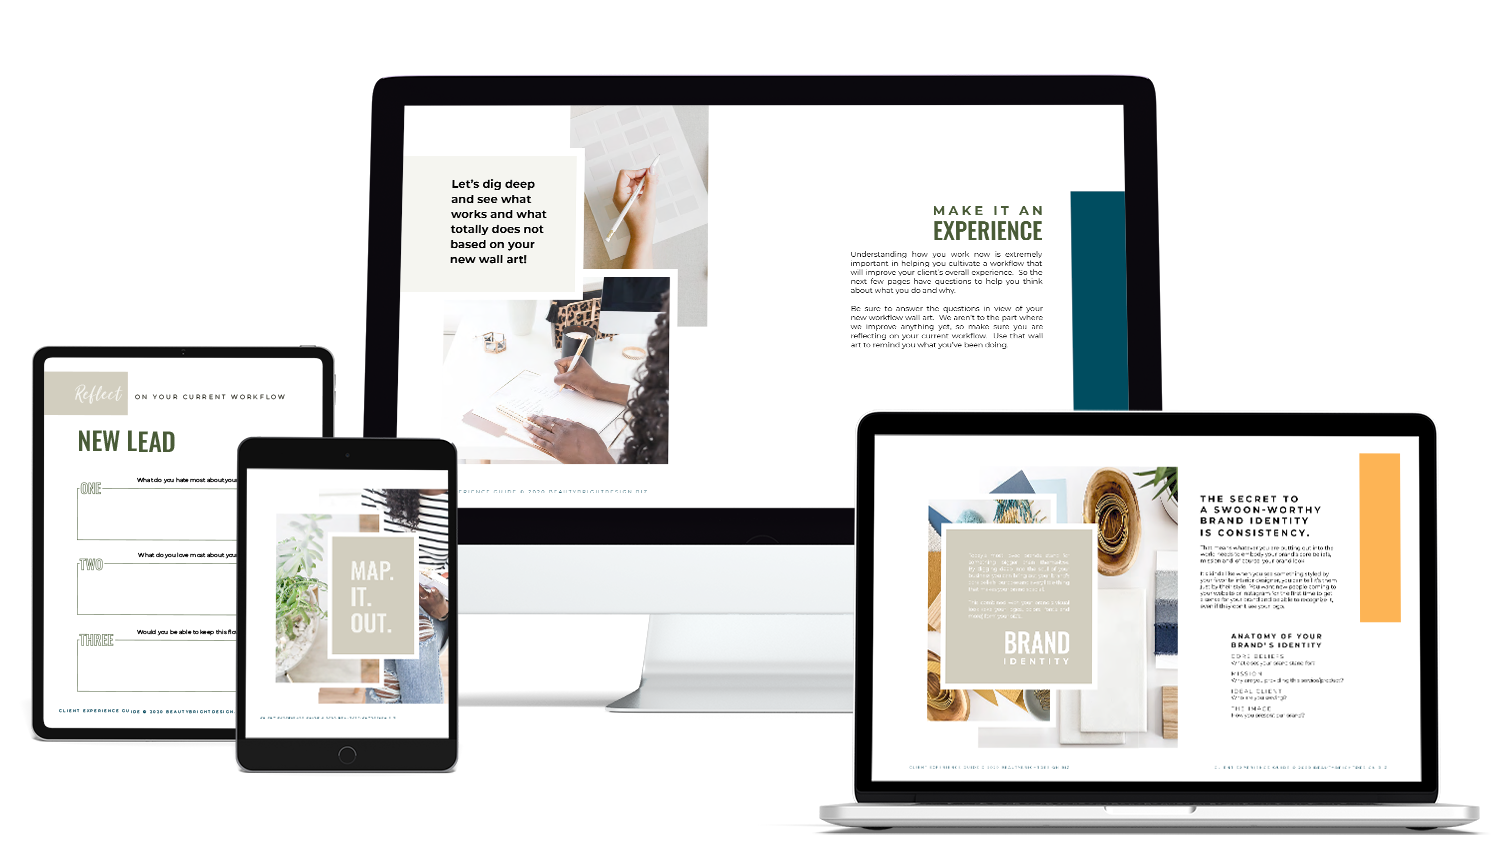 client experience guide from Molly Hicks, Brand Strategist and Graphic Designer